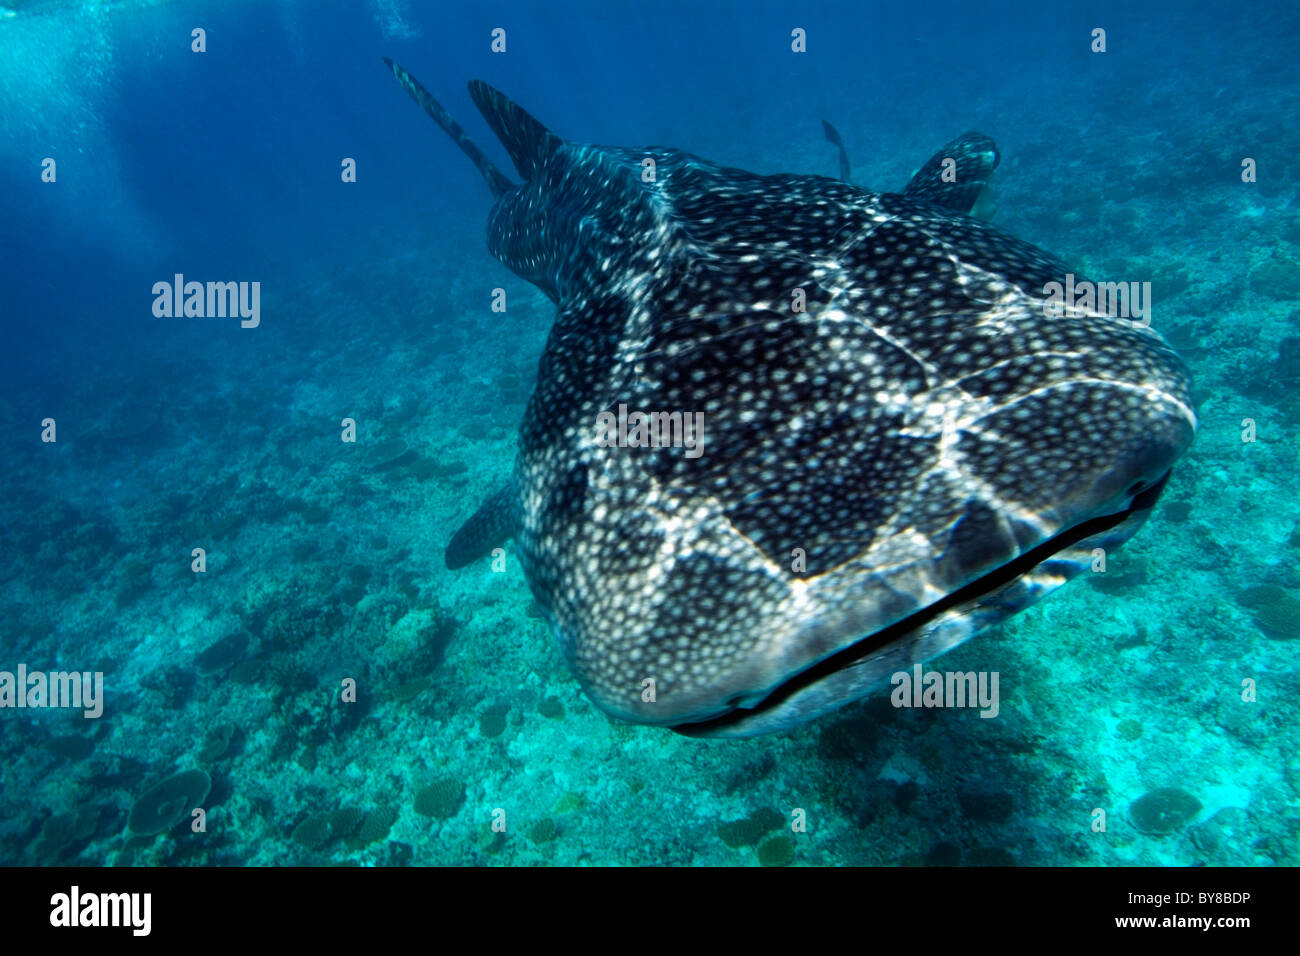 Spotted whale shark - rhincodon typus - Stock Image